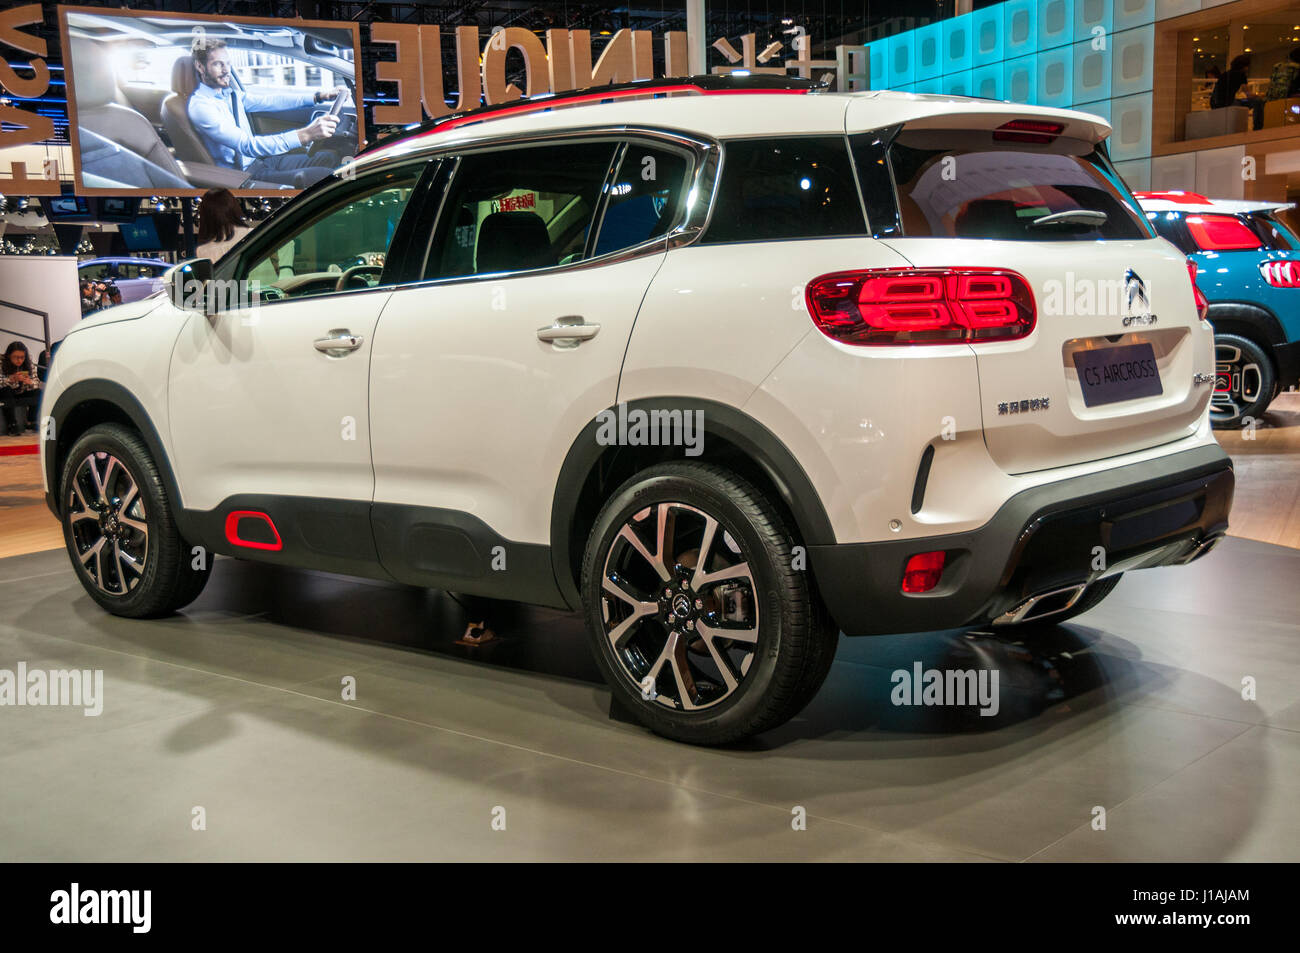 shanghai china 19th apr 2017 citroen c5 aircross from dongfeng stock photo 138531532 alamy. Black Bedroom Furniture Sets. Home Design Ideas